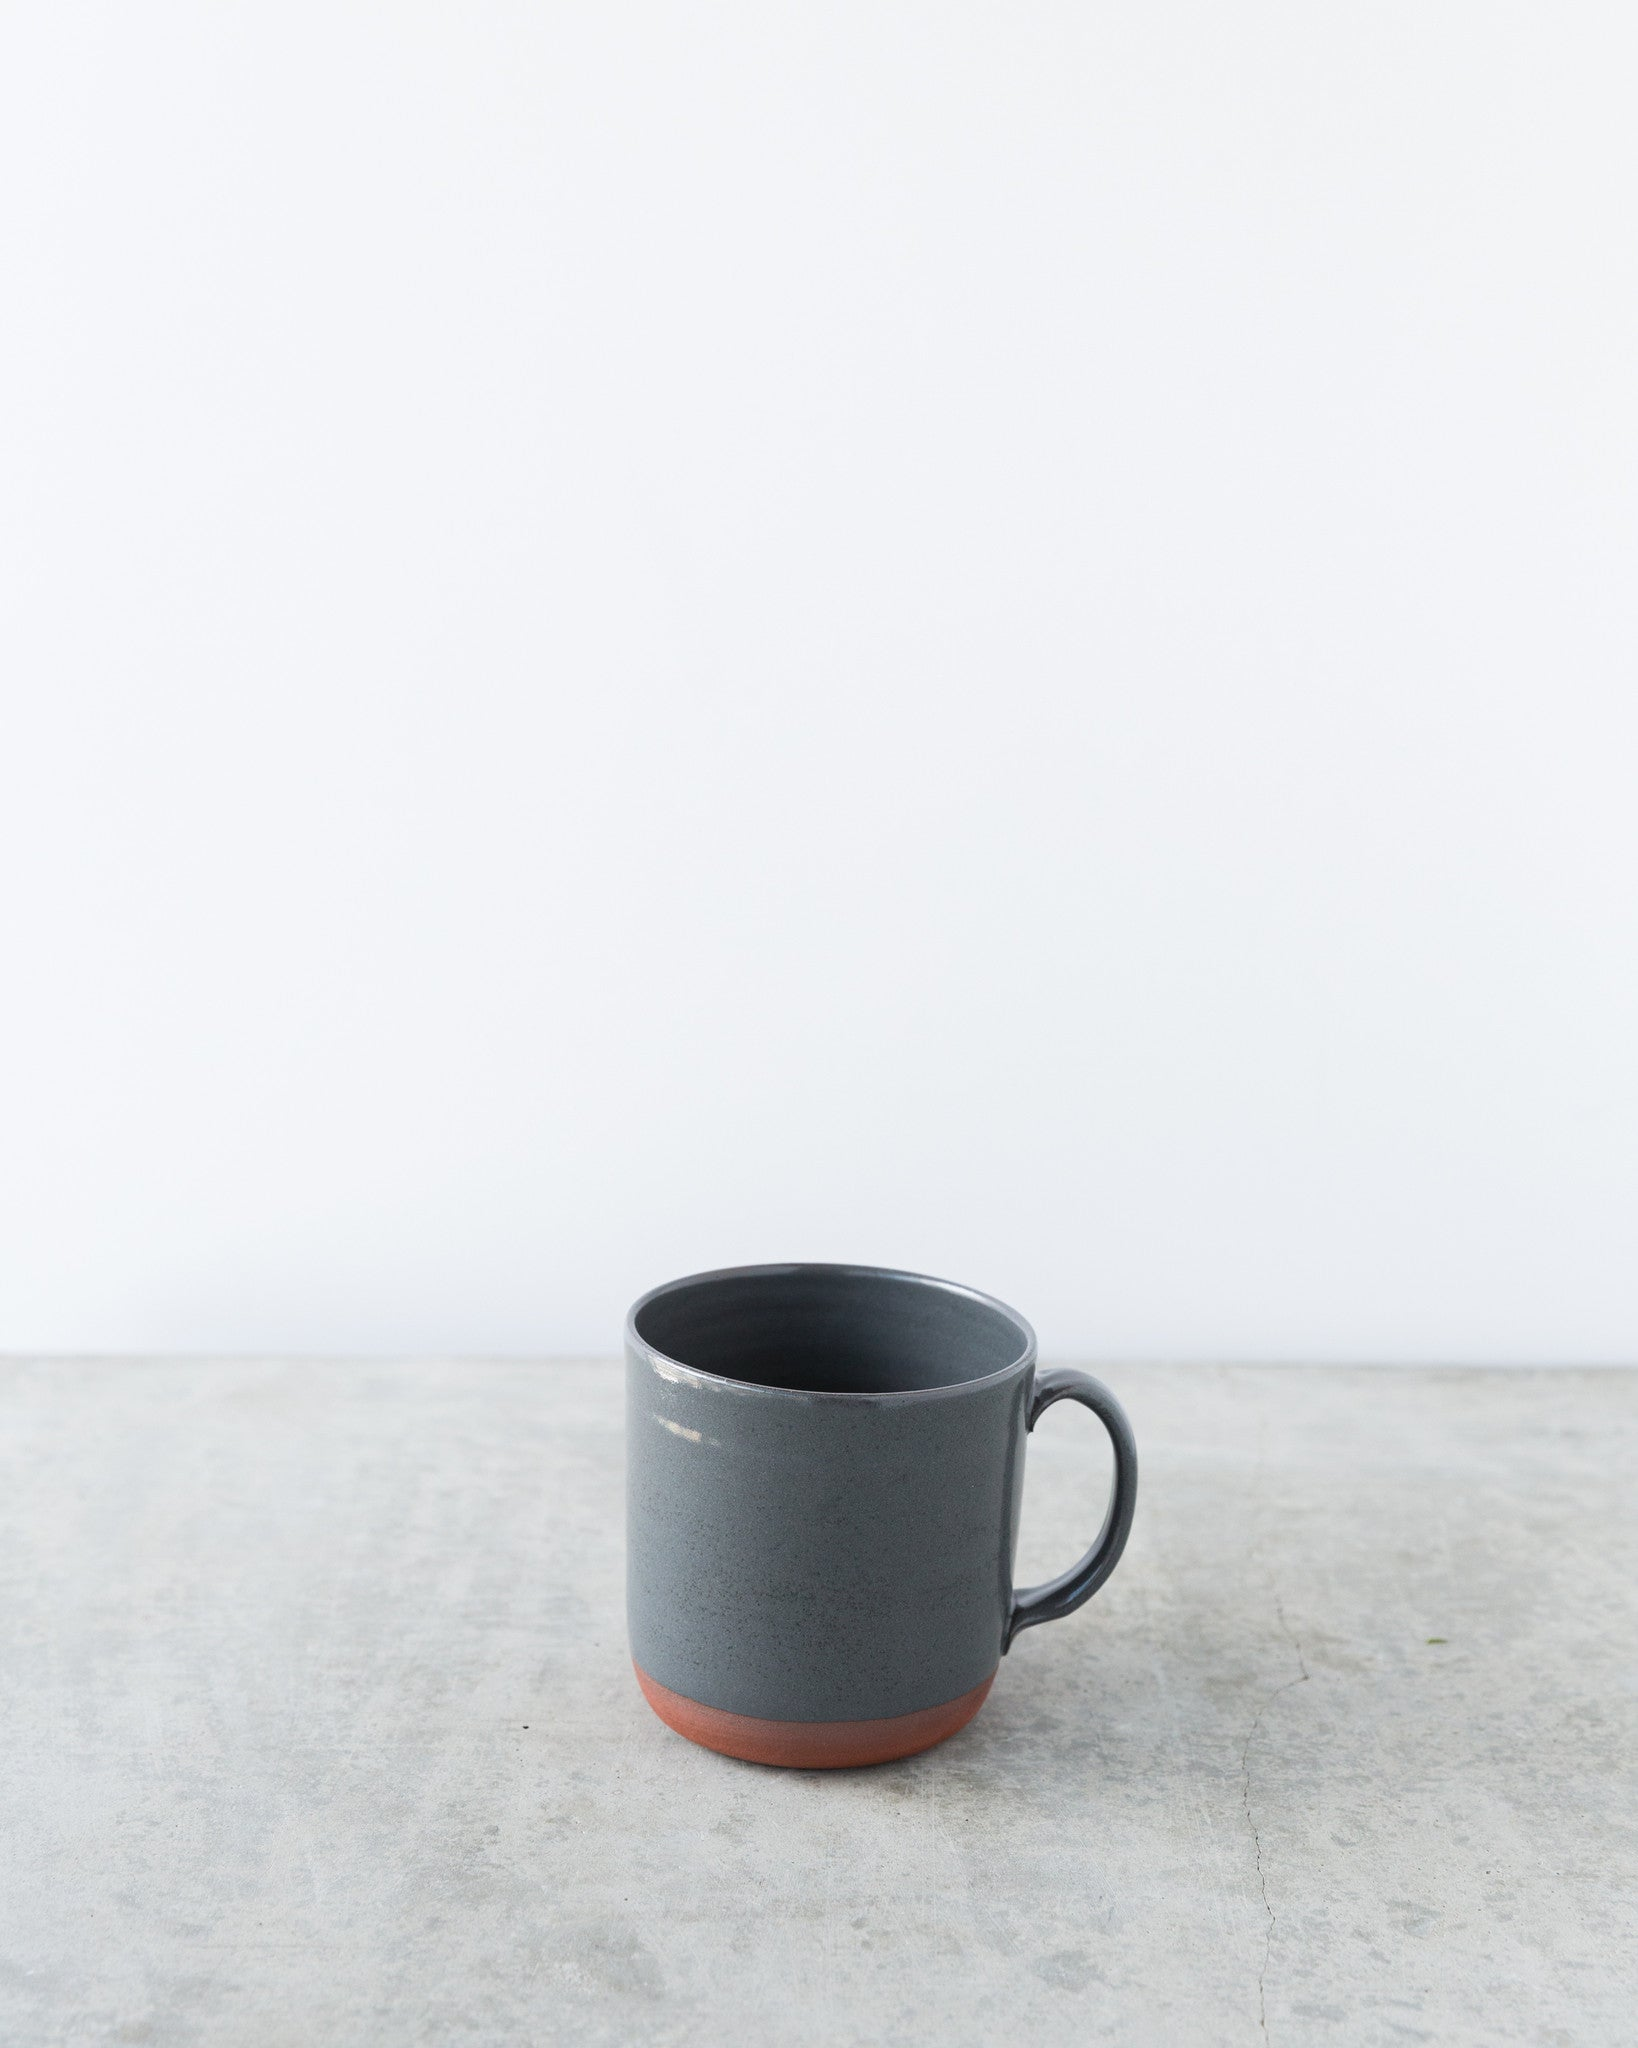 Kalika Bowlby Nest Collection Mug in Charcoal Grey